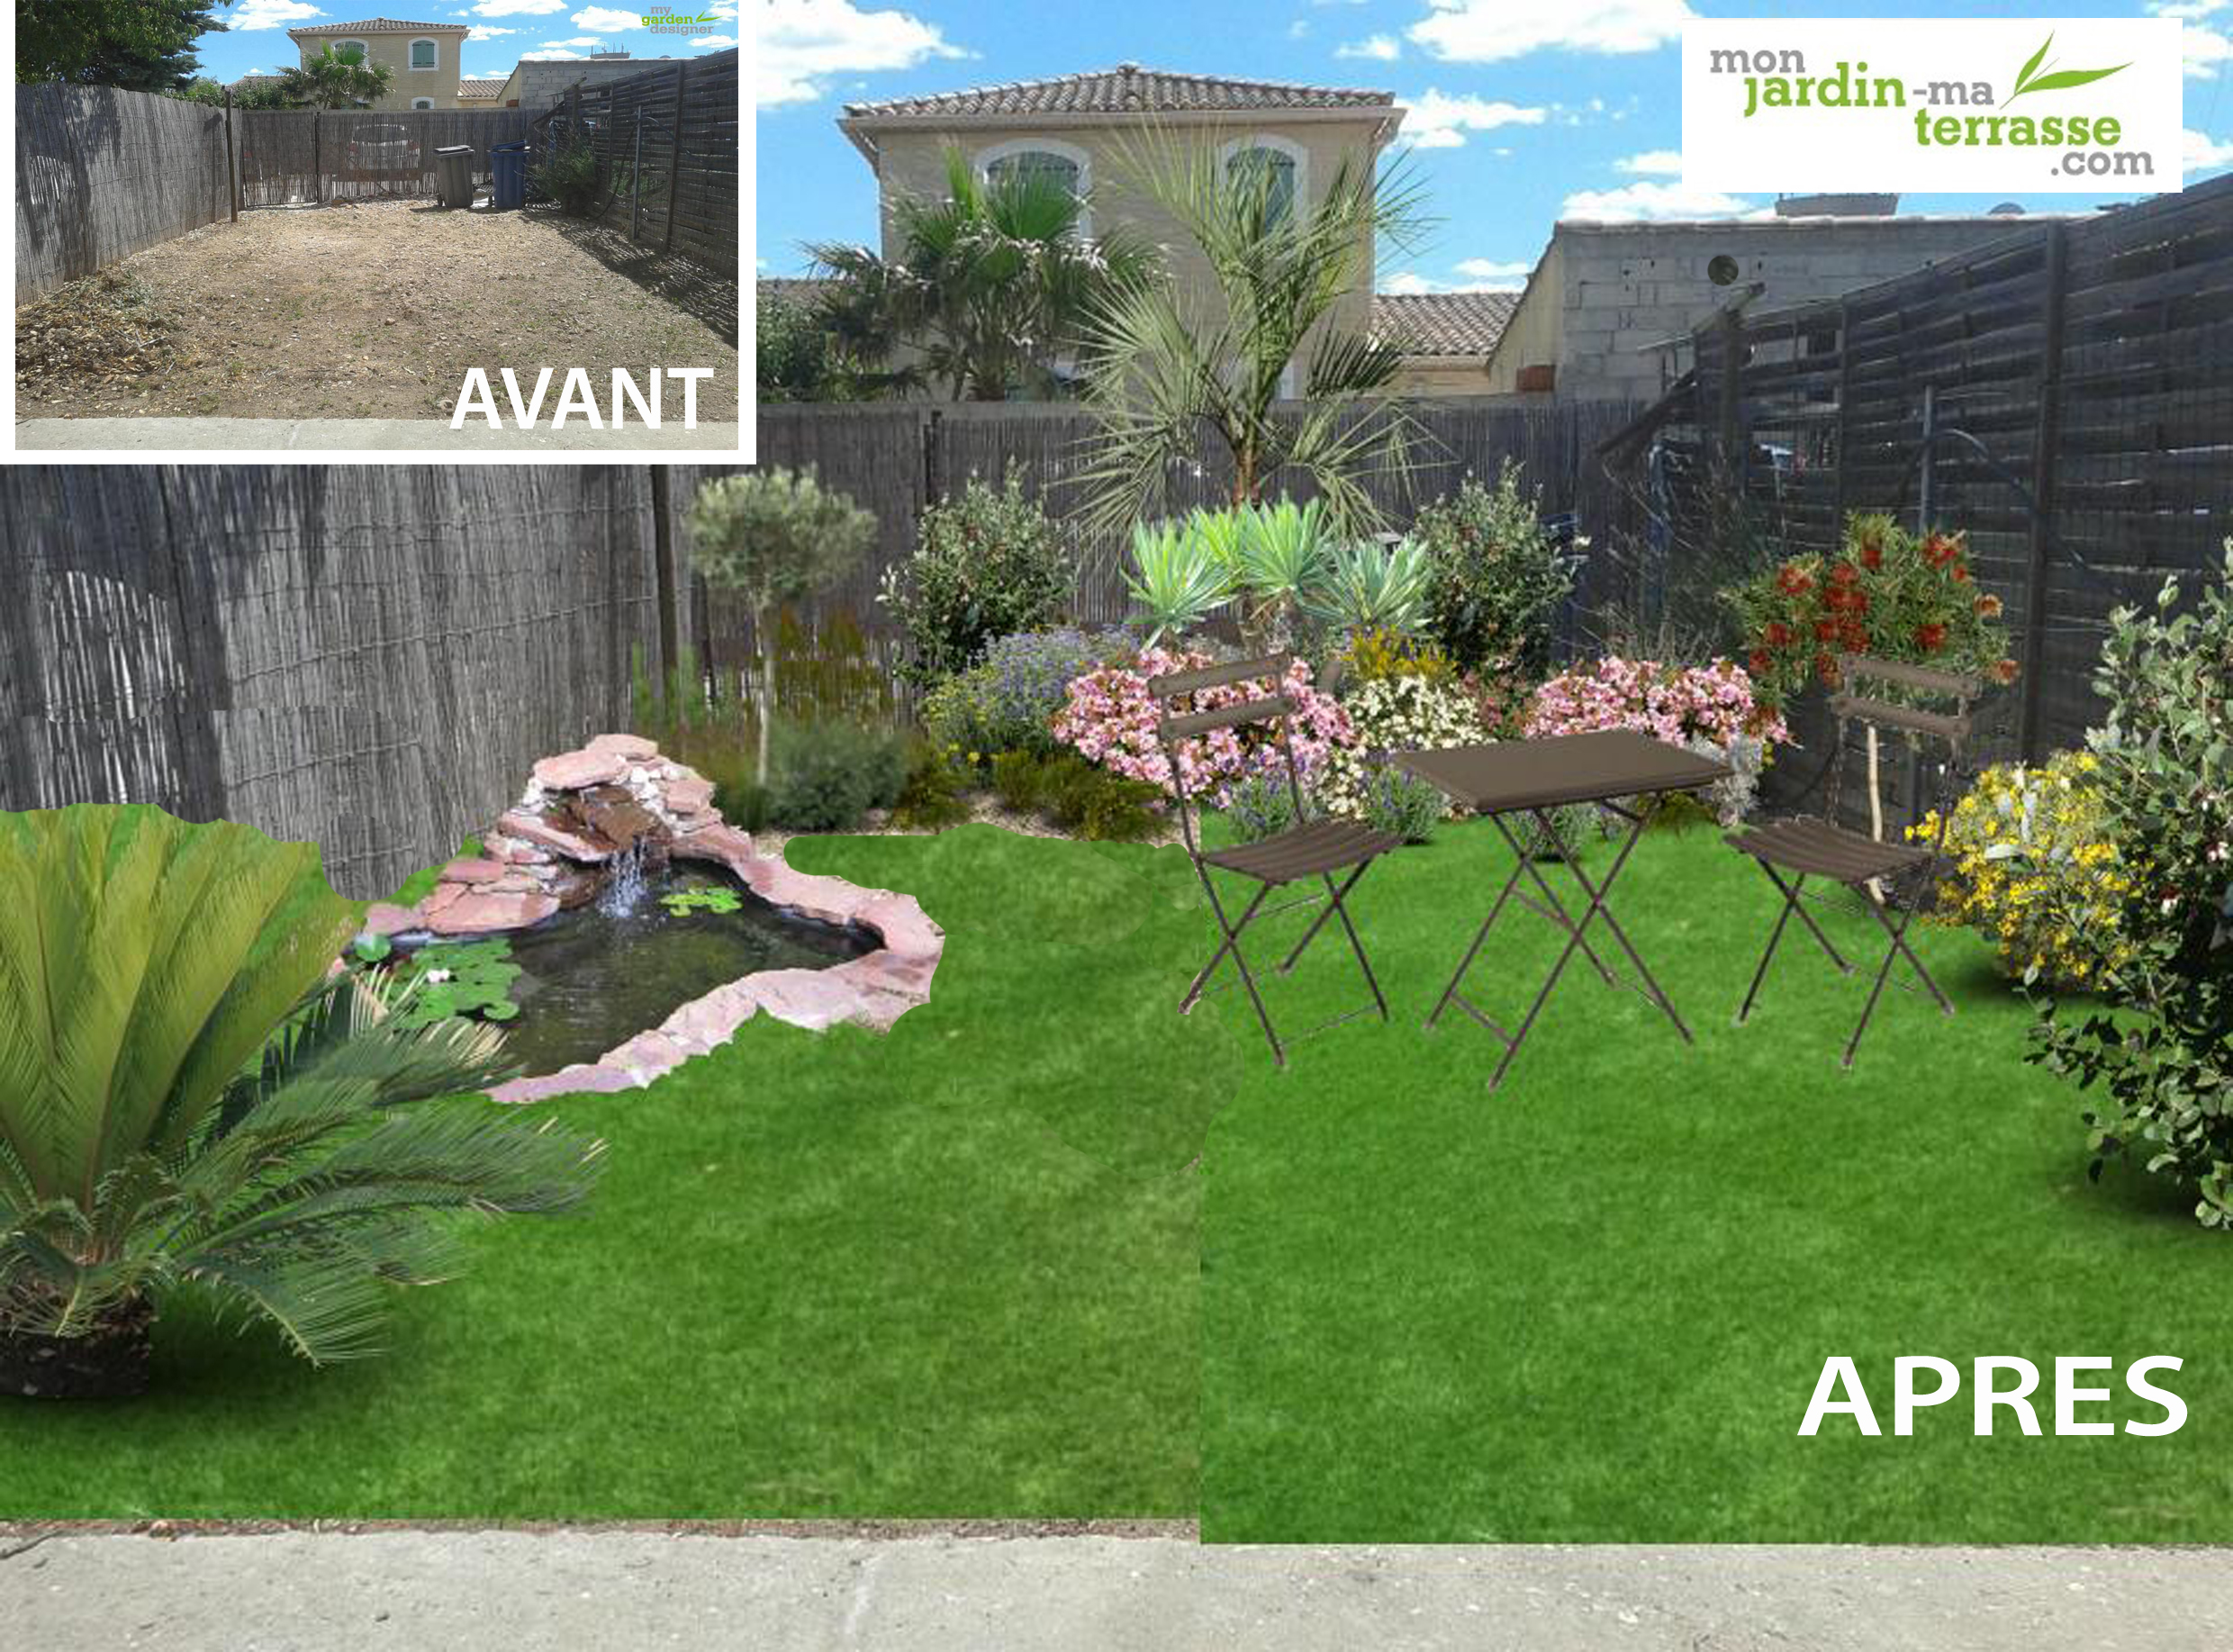 Id e d am nagement d un petit jardin monjardin for Idee creation jardin